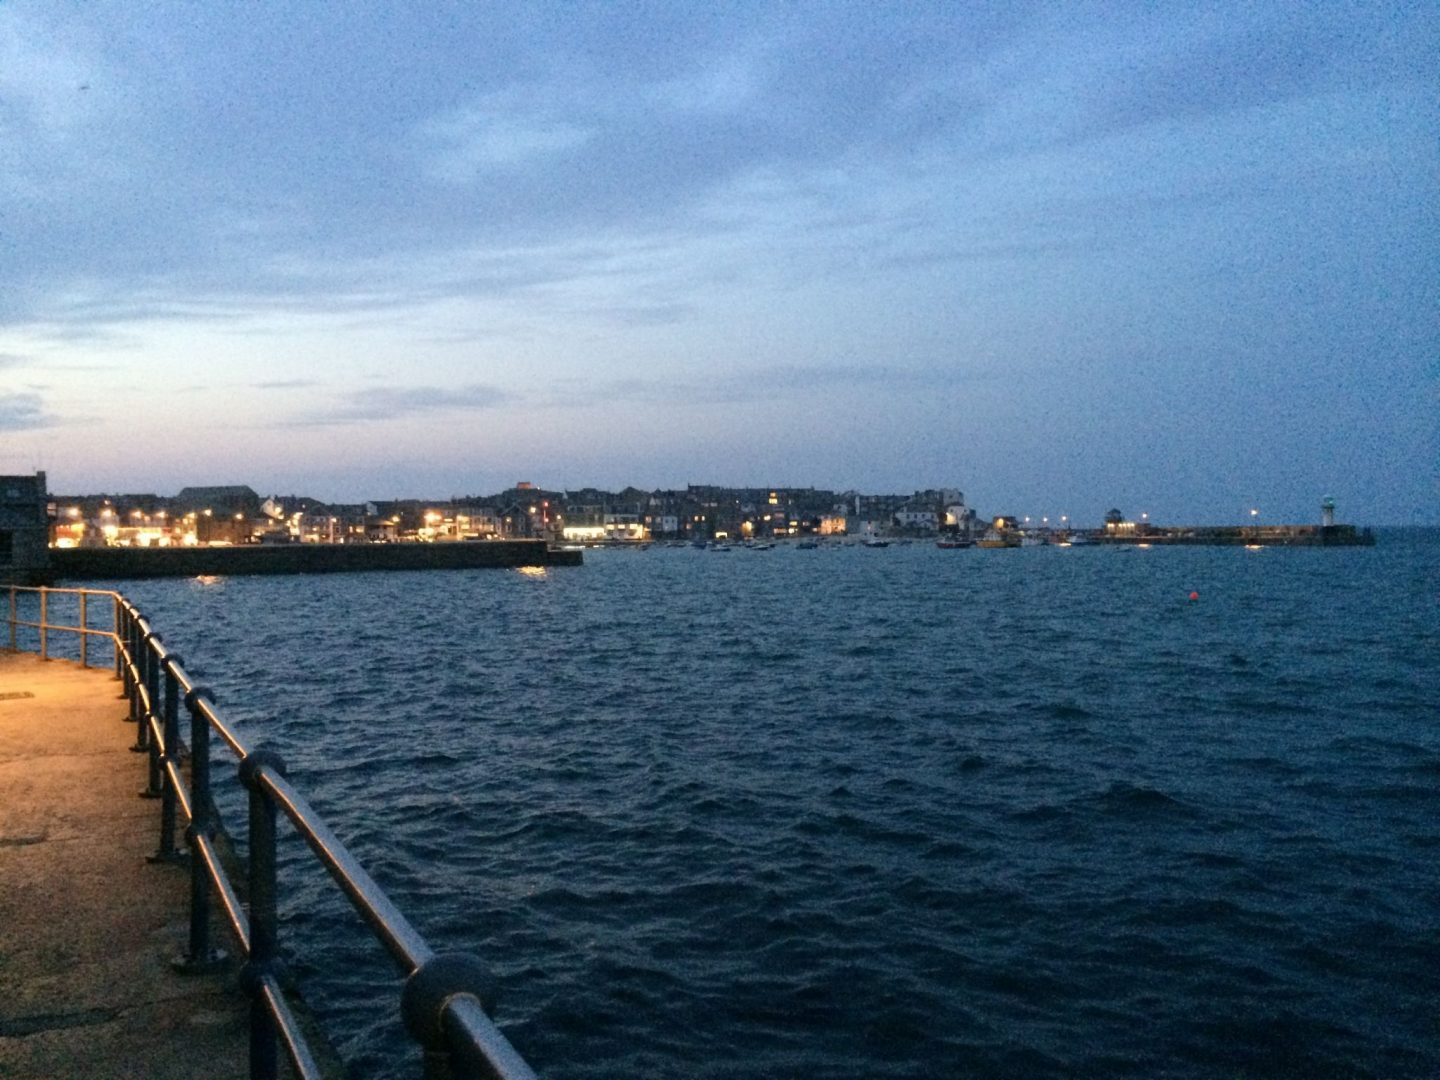 Night time across St Ives, Cornwall